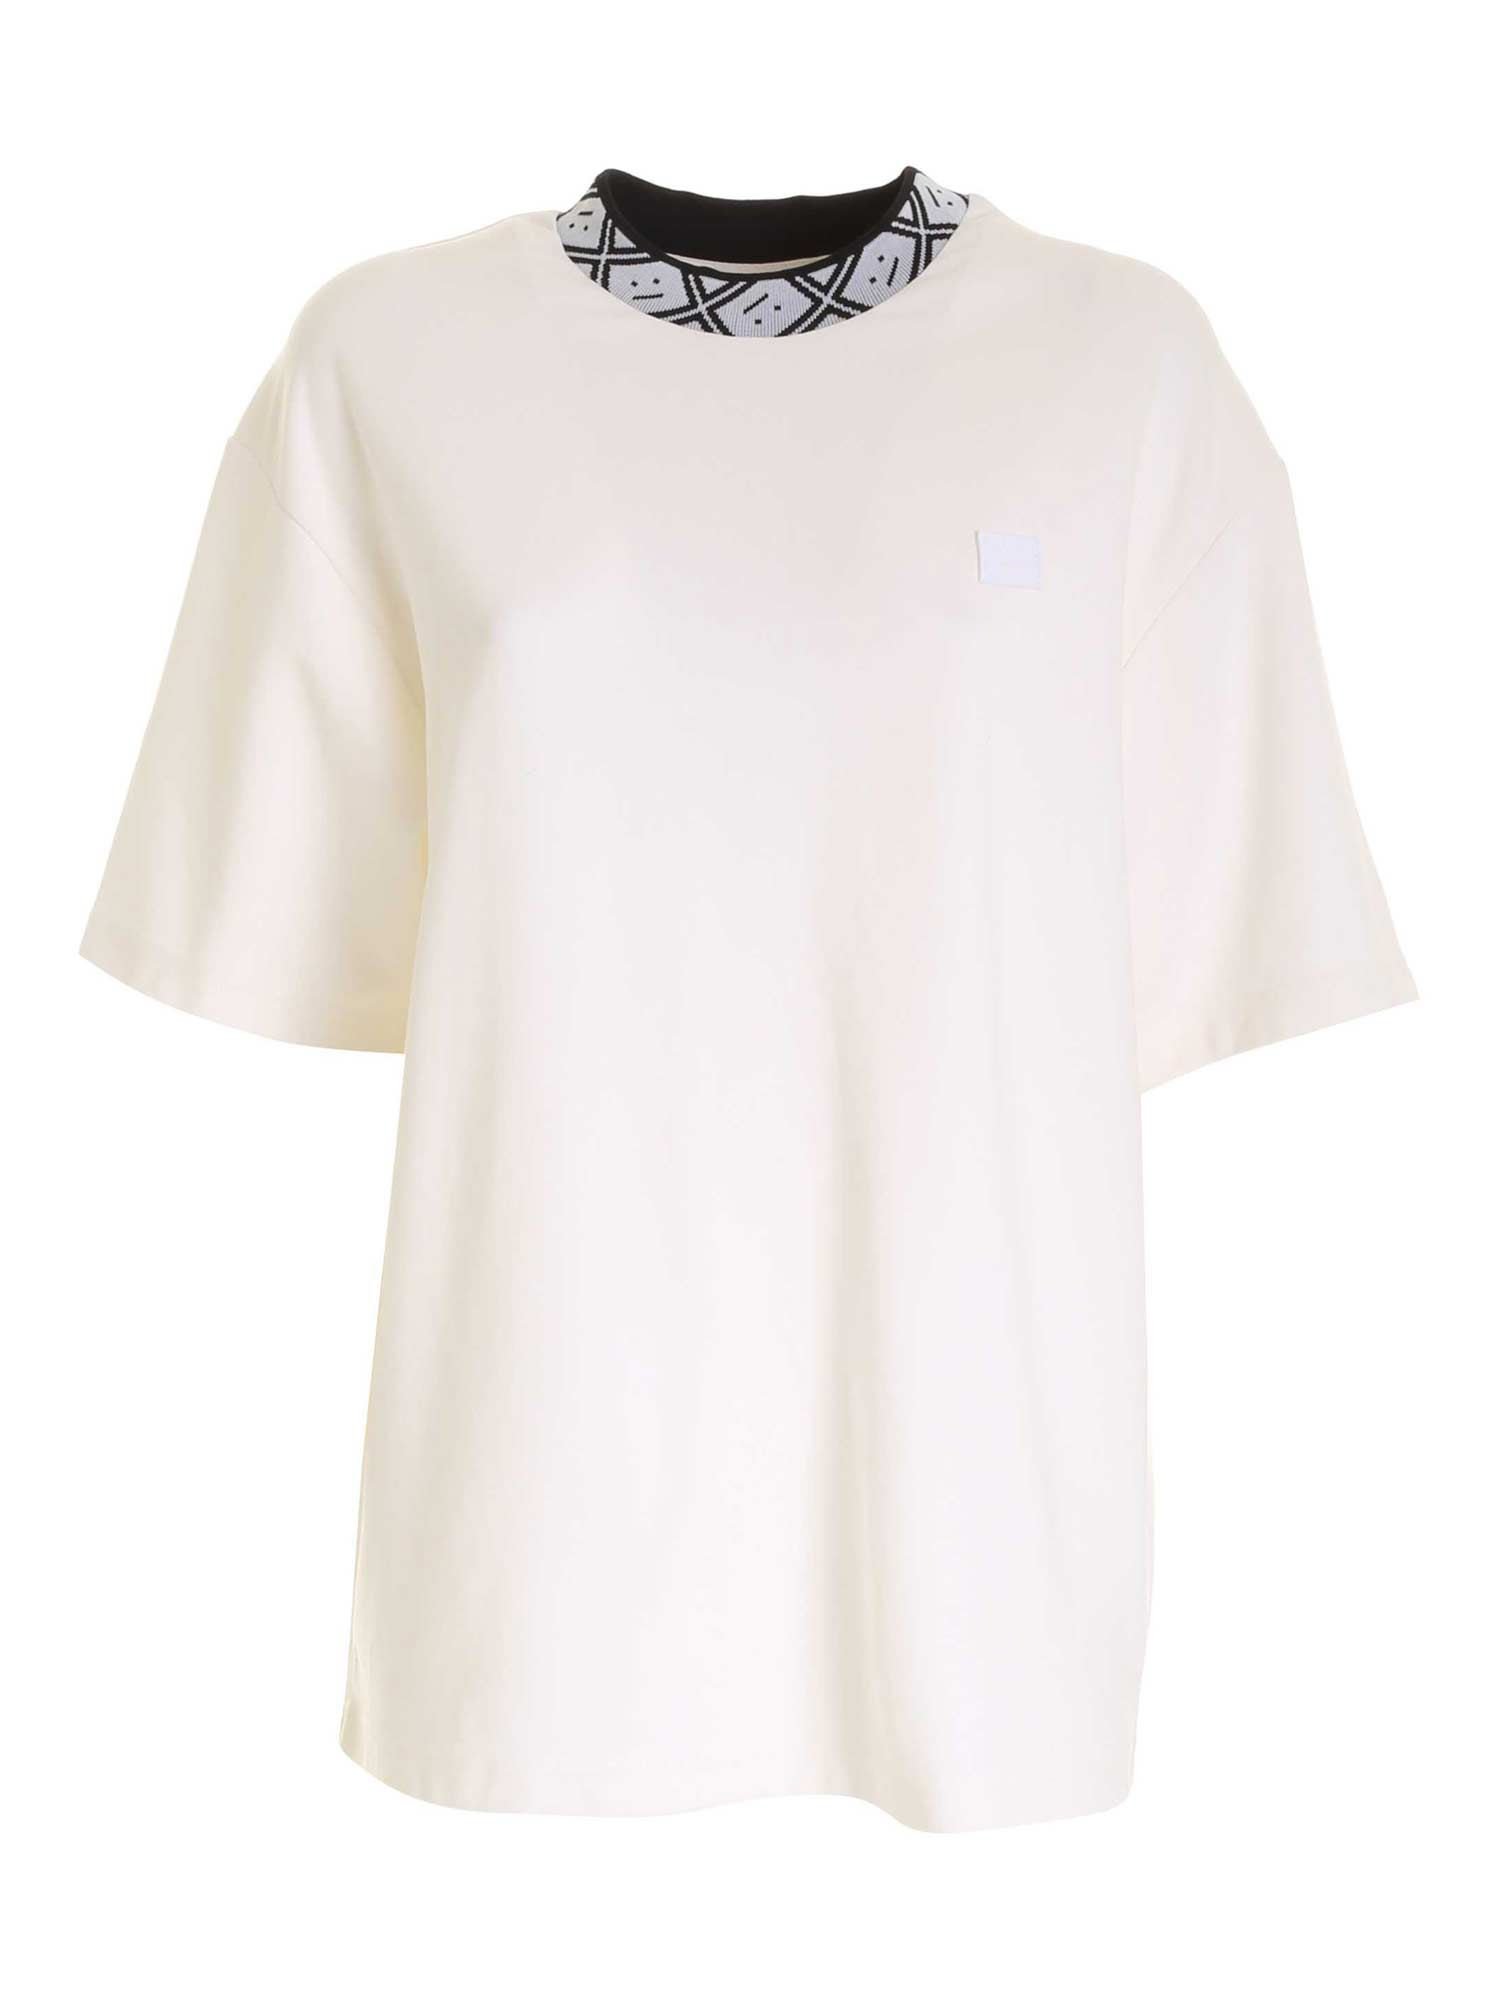 Acne Studios T-shirts BRANDED COLLAR T-SHIRT IN WHITE